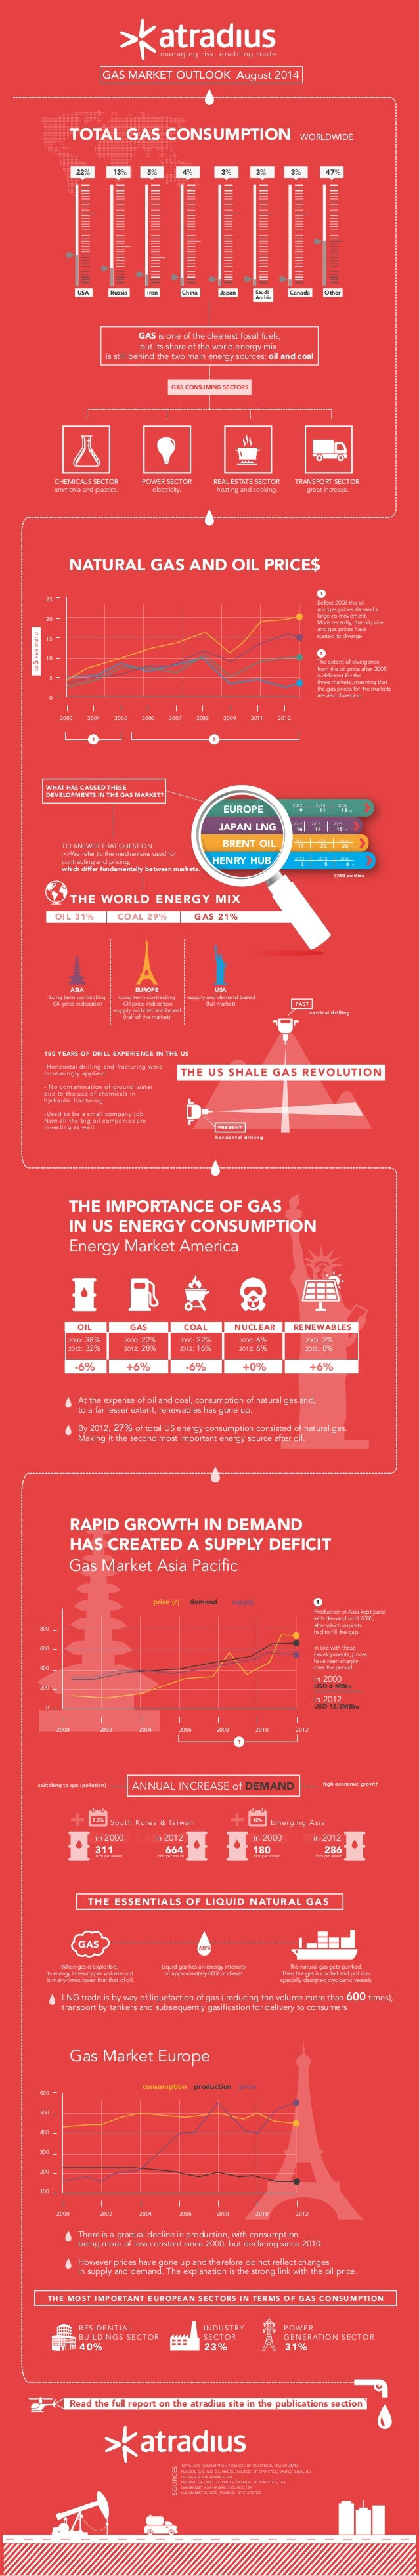 managing risk, enabling trade GAS MARKET OUTLOOK August 2014 NATURAL GAS AND OIL PRICE$ THE IMPORTANCE OF GAS IN US ENERGY...